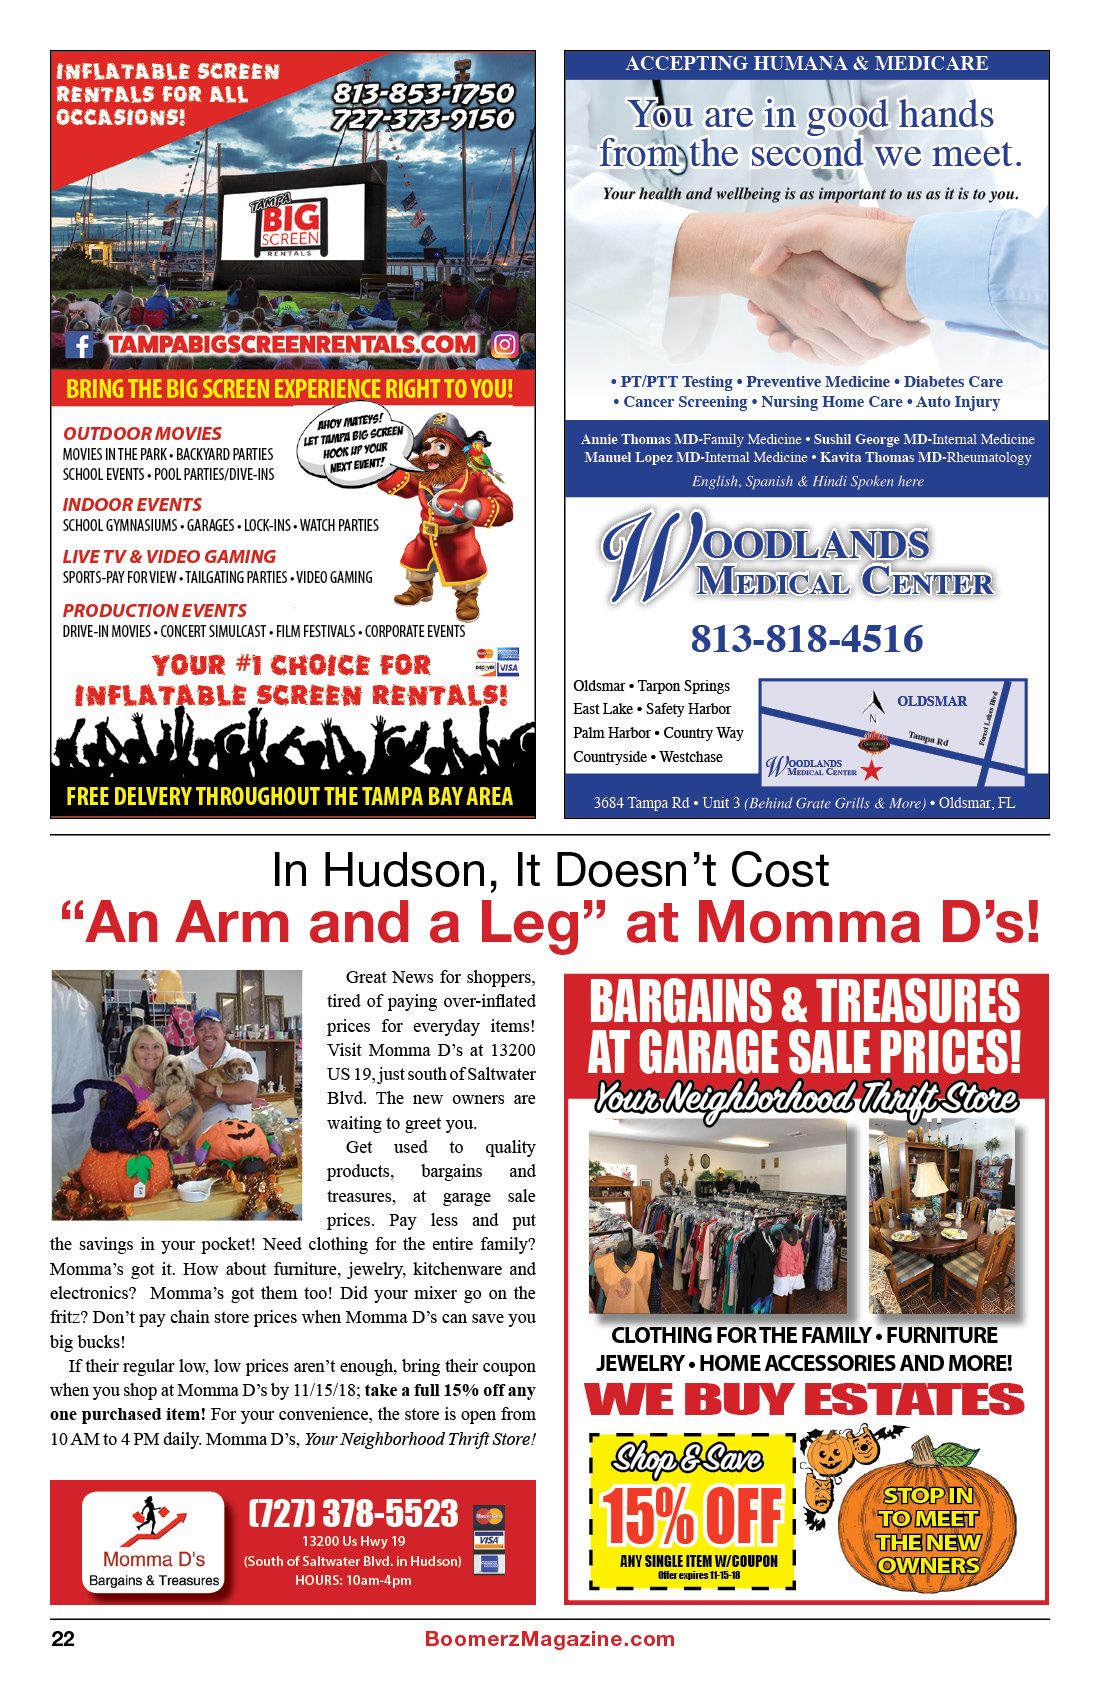 2018 October Boomerz Magazine Page 22 Adds from Momma-D's Woodland-Medical-Center Tampa-big-screen-rentals